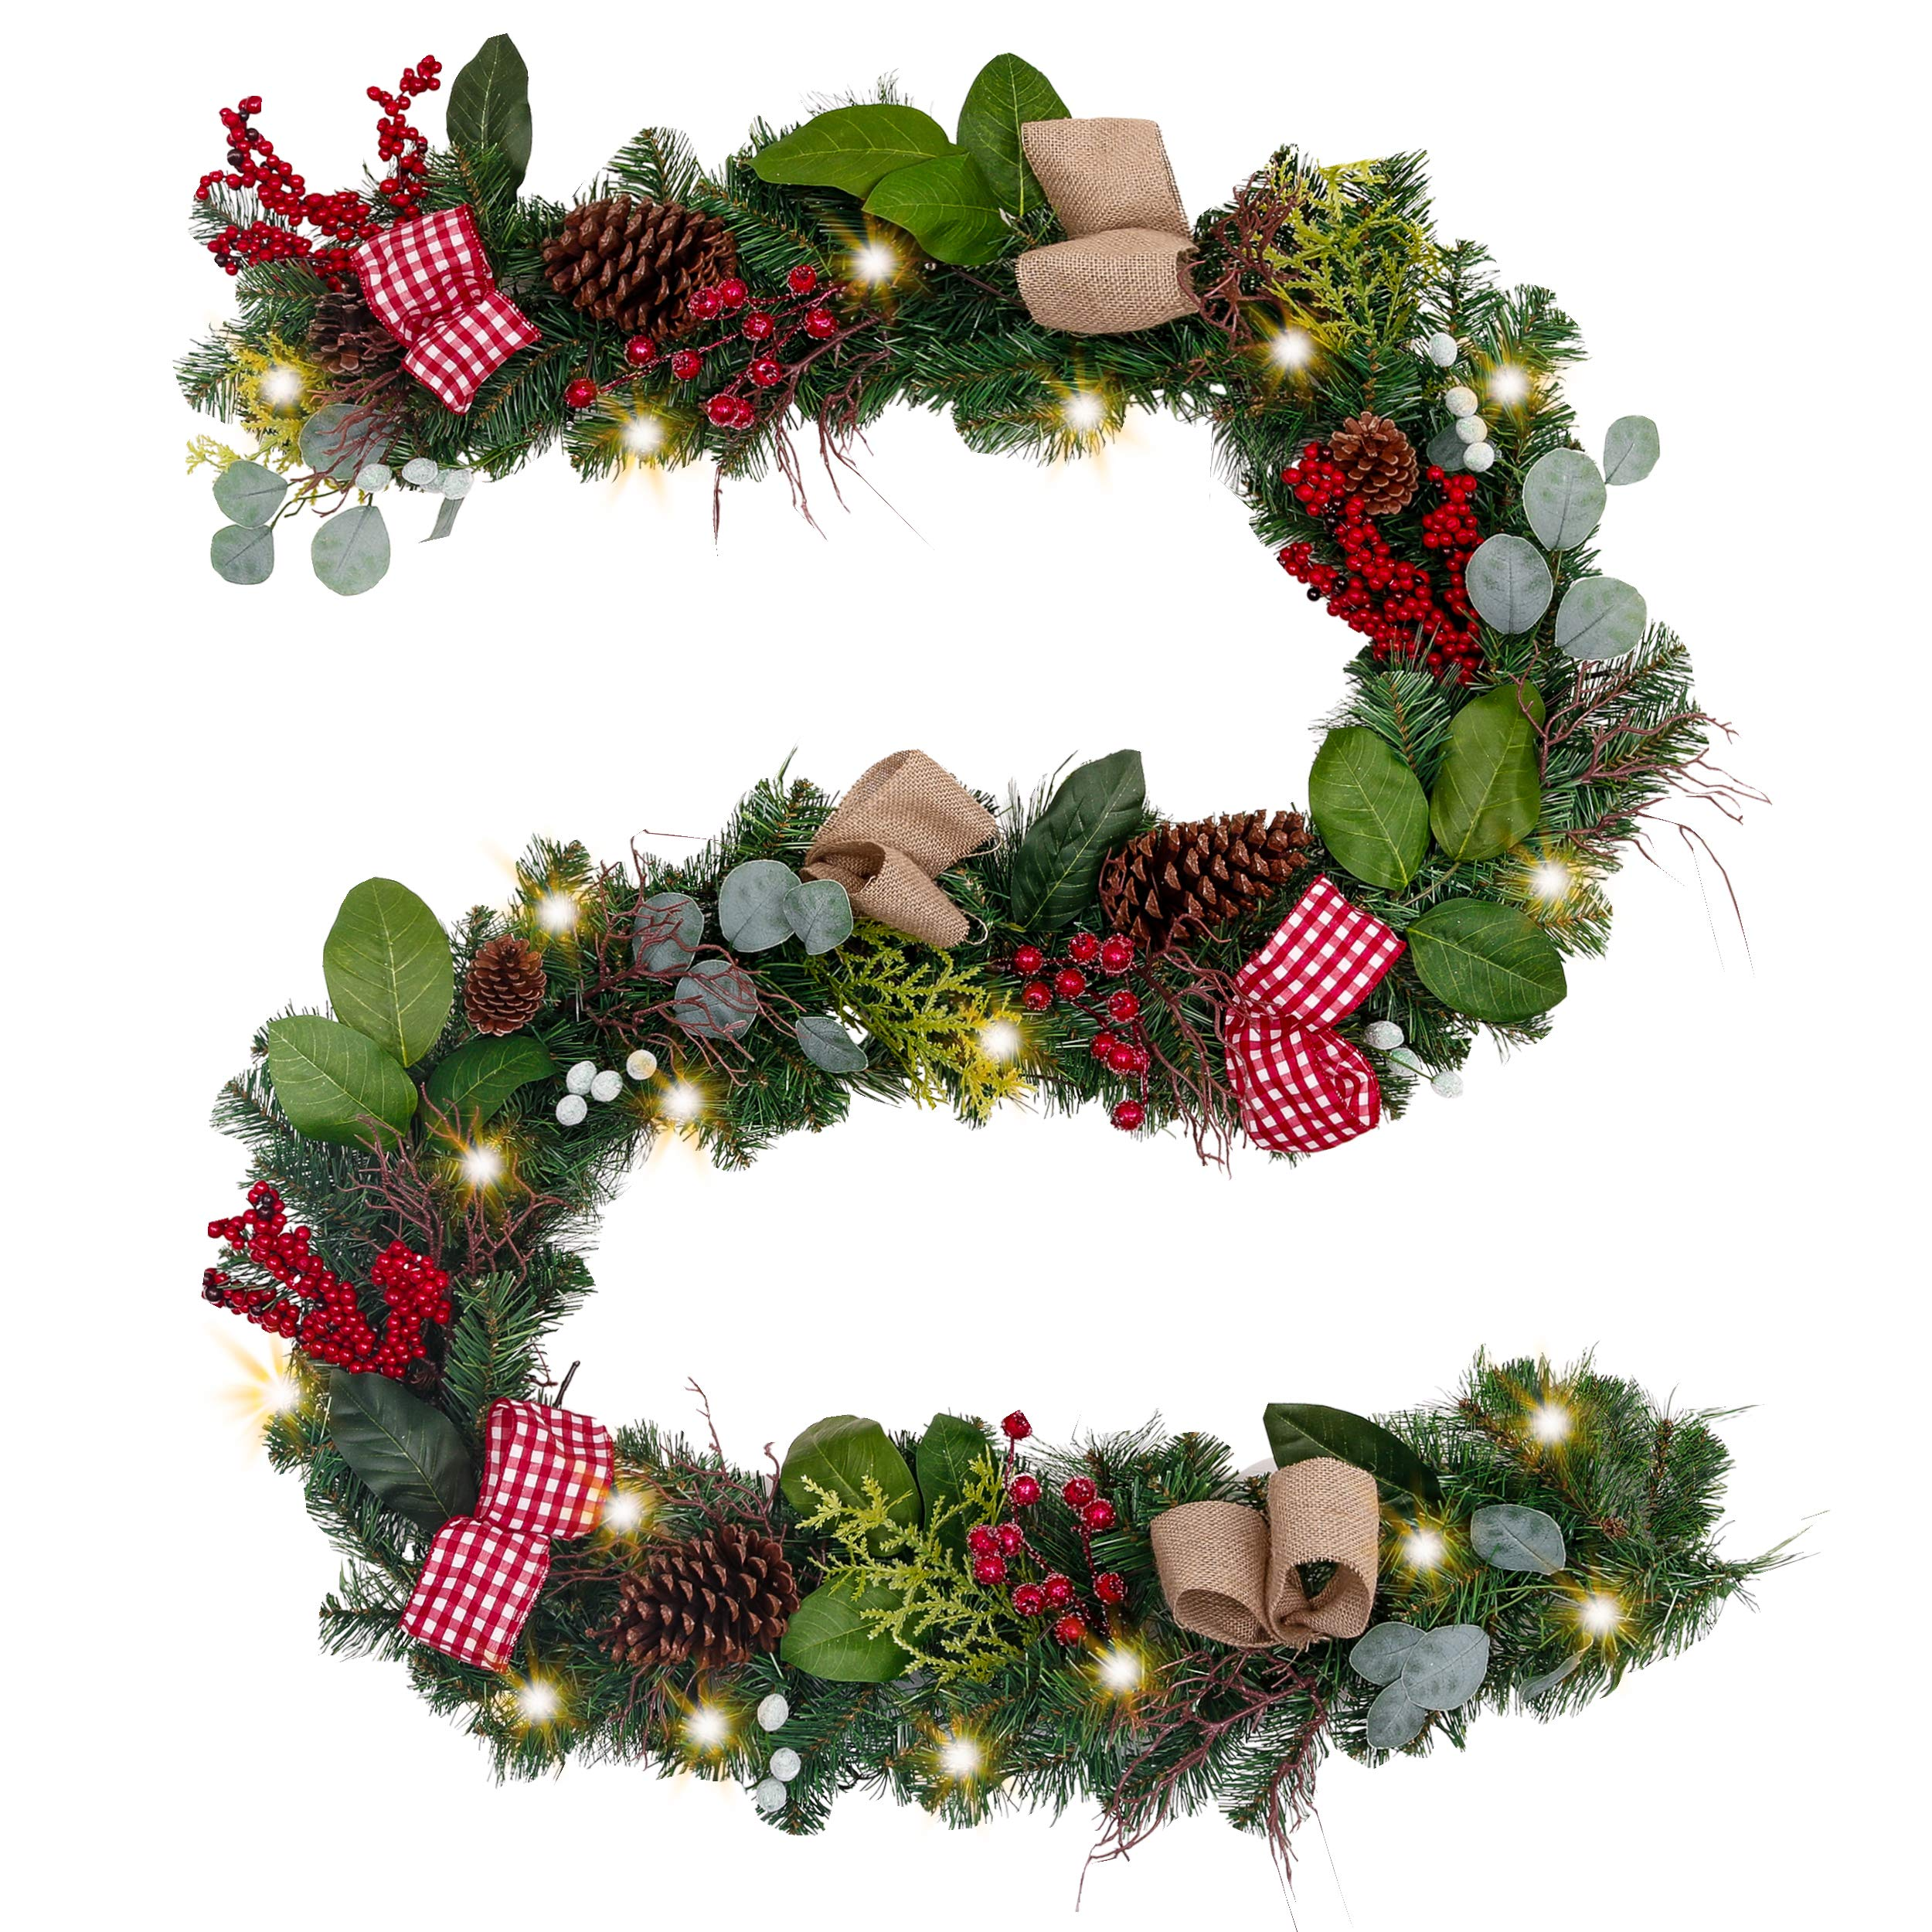 Valery Madelyn Pre-Lit 9 Feet/106 Inch Farmhouse Christmas Garland with Ball Ornaments Decorations, Berries, Pine Cones, Ribbons and Flowers, Battery Operated 40 LED Lights